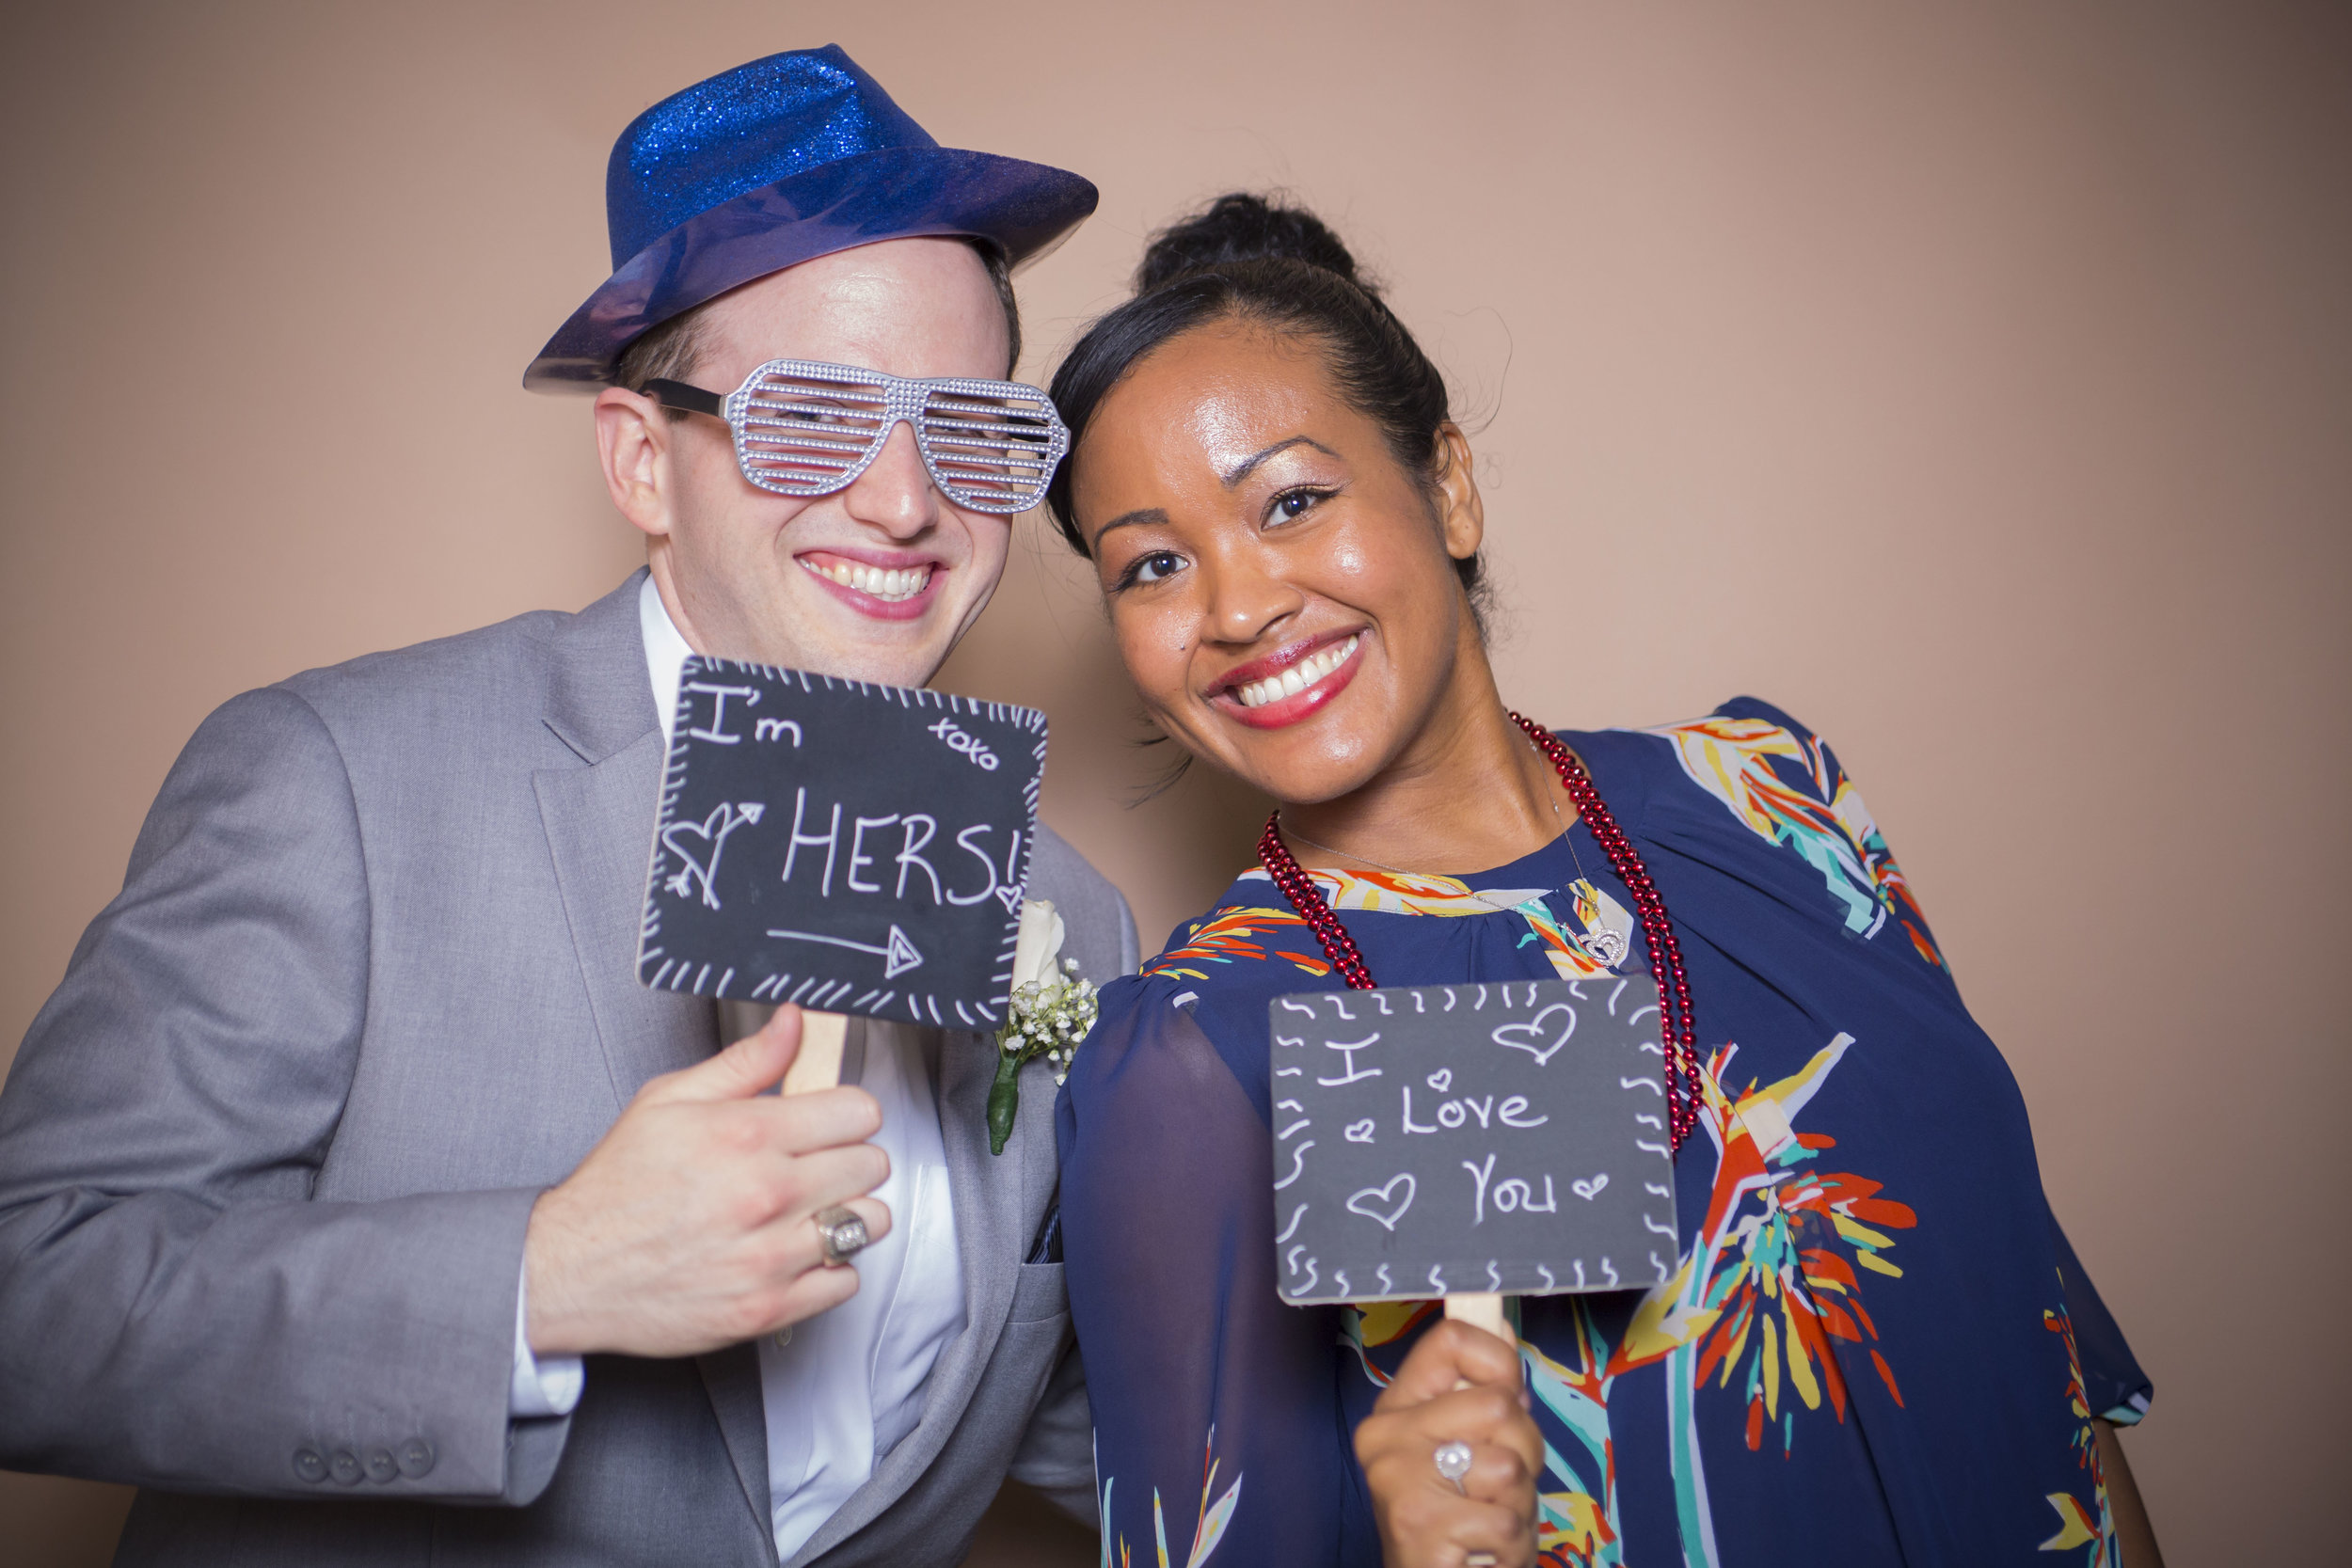 McCain Wedding Booth - Wedding Photo Booth